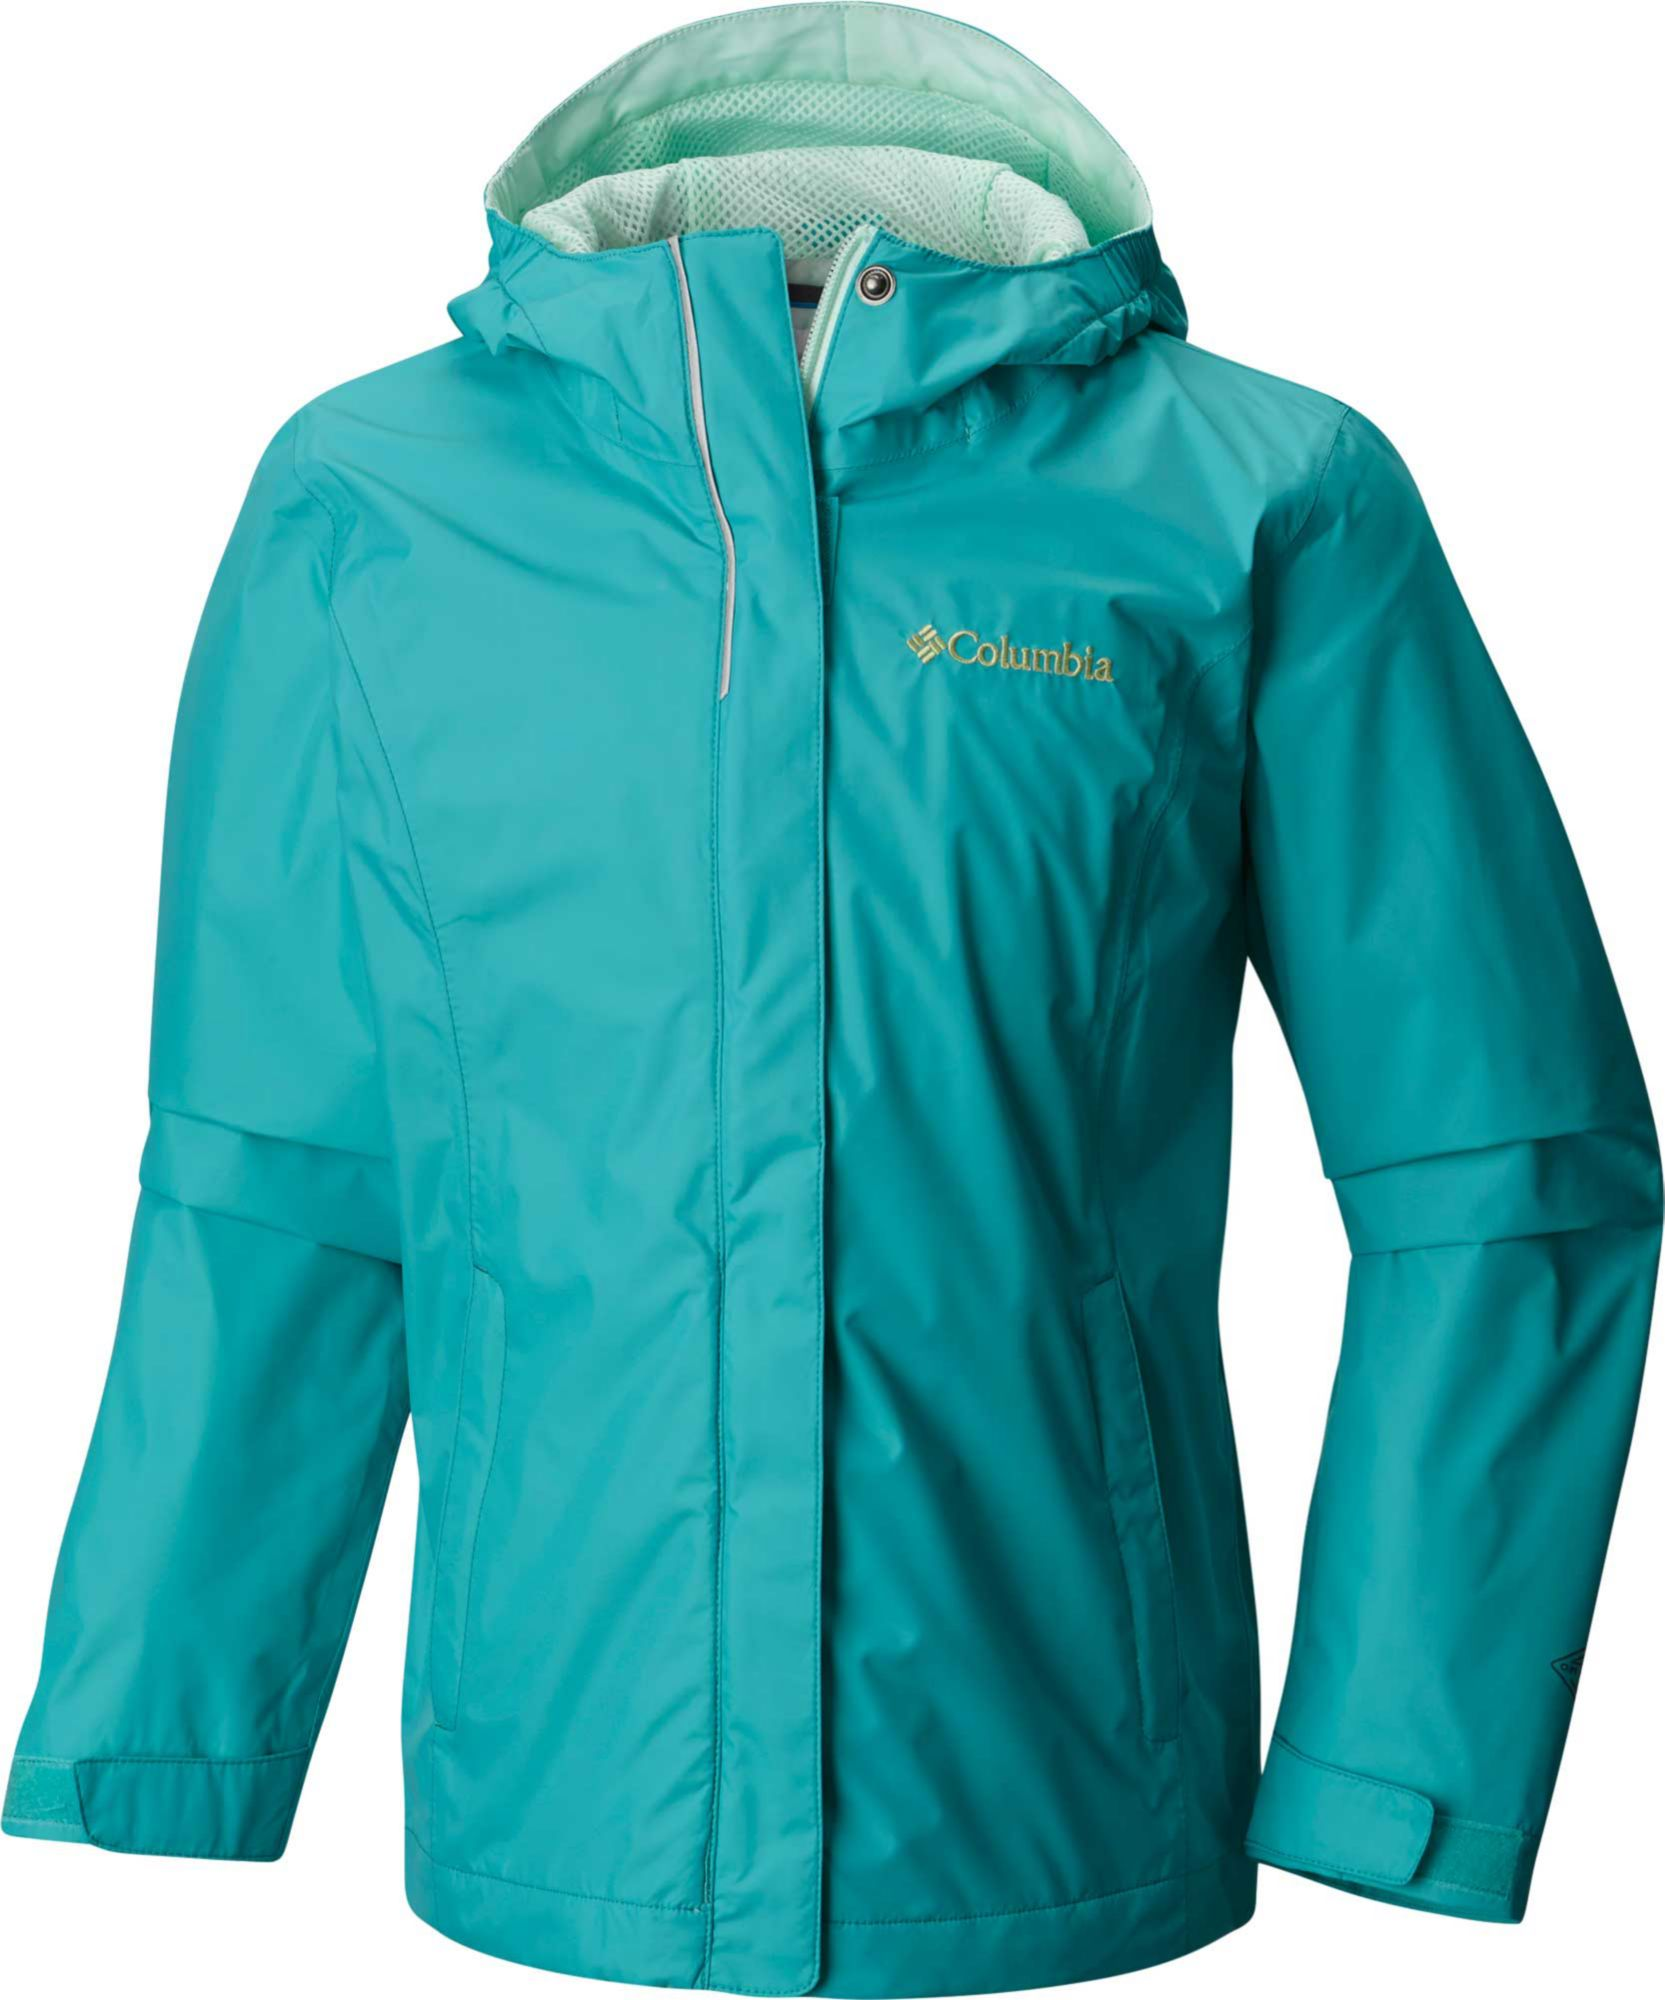 Columbia Girls' Arcadia Rain Jacket | DICK'S Sporting Goods